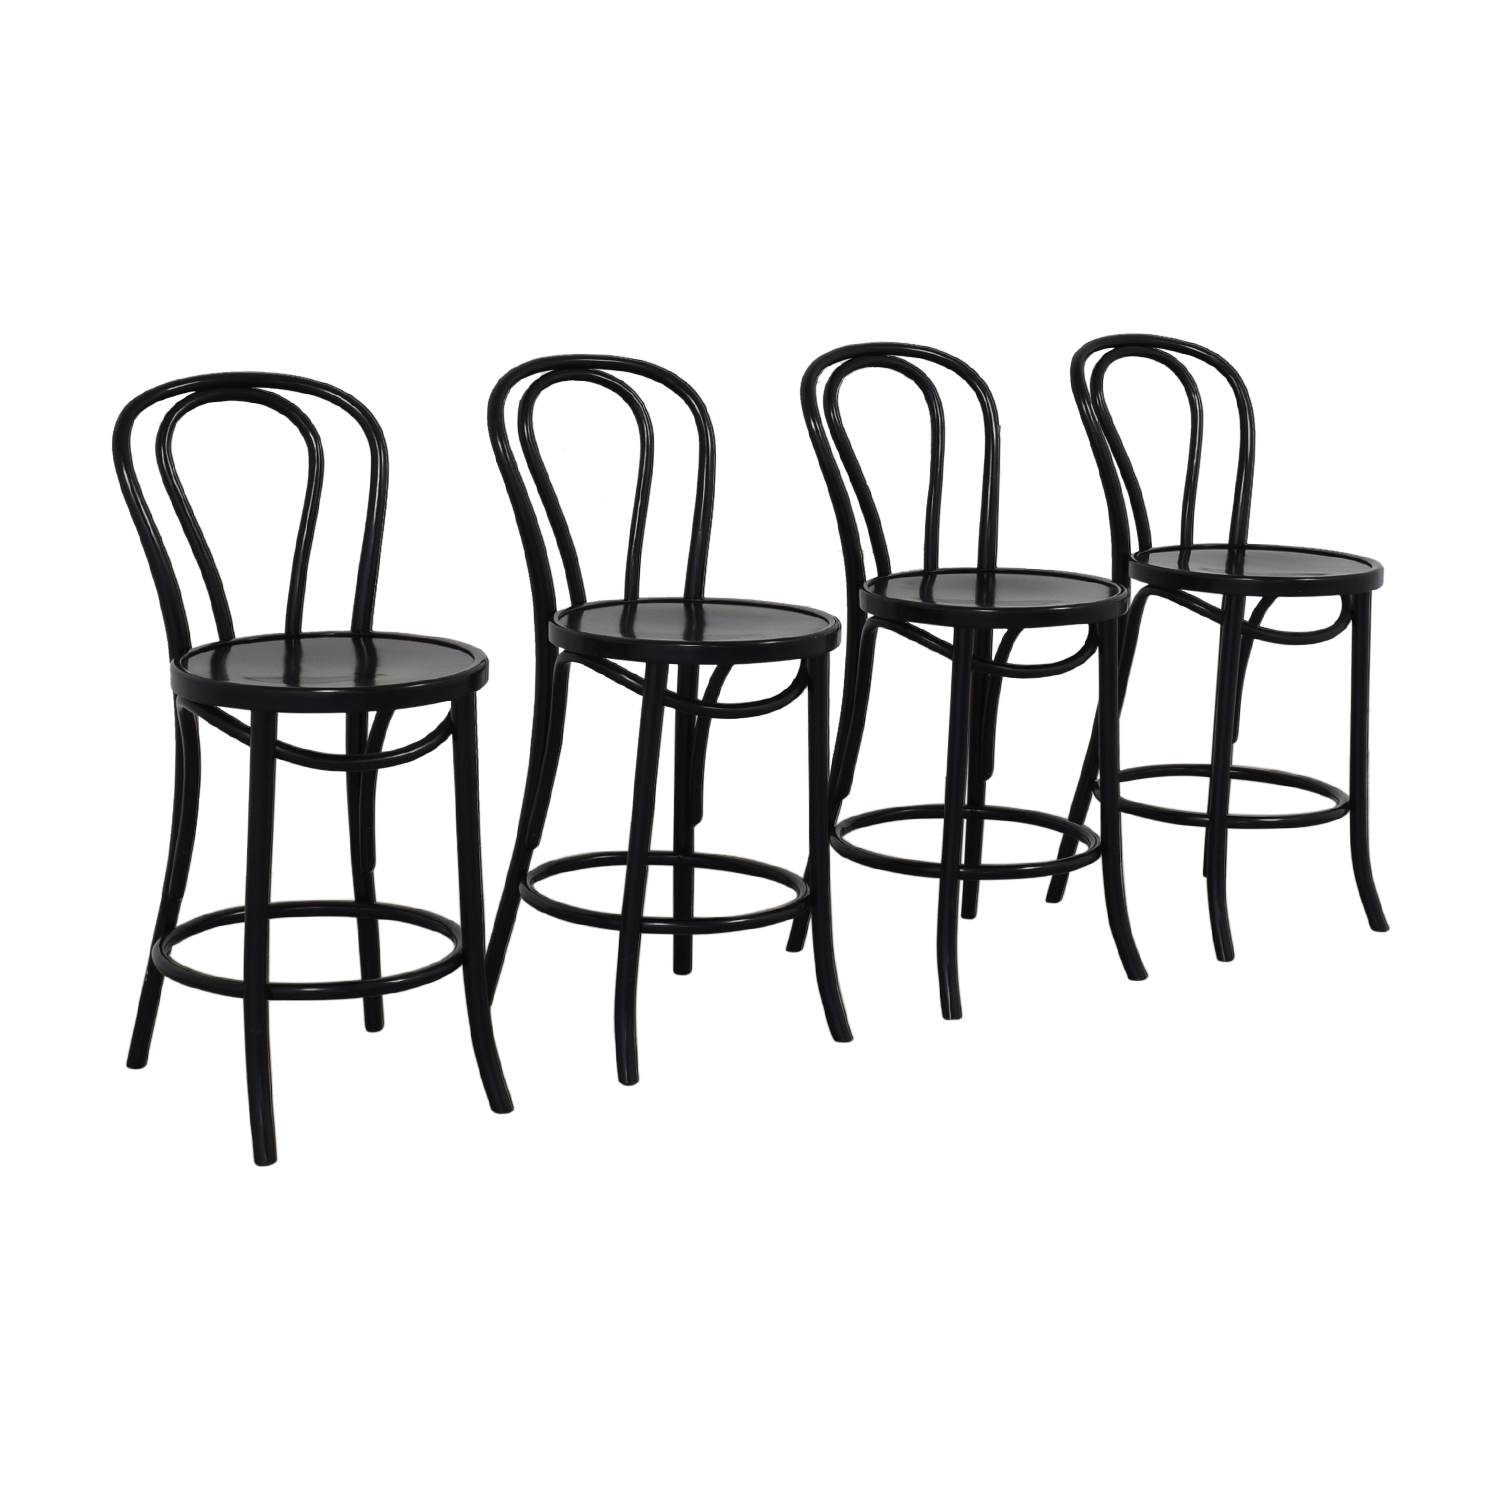 Crate & Barrel Crate & Barrel Vienna Black Matte Counter Stools on sale